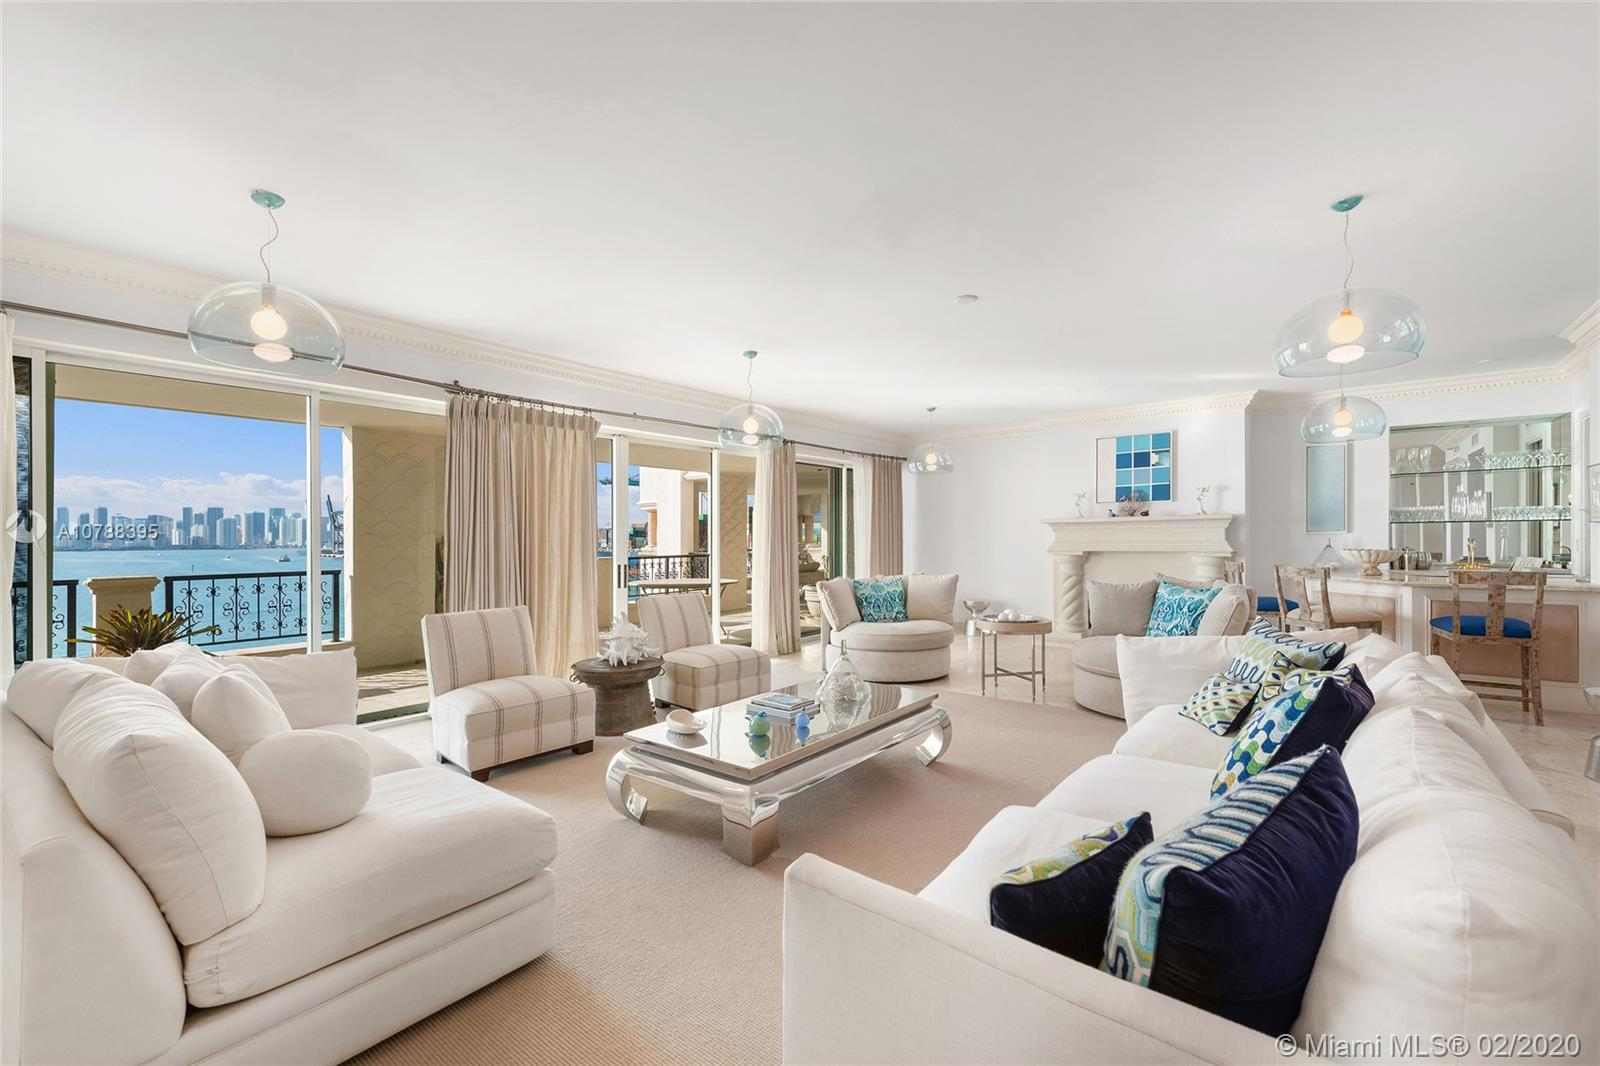 This beautiful Bayview unit on Fisher Island features 5,790 SQFT of interior space & 2 large private terraces w/unobstructed views over Fisher Island, Government Cut, the Atlantic Ocean, Biscayne Bay and the downtown Miami skyline. The spacious open living room and private dining room each have beautiful fireplaces & amazing views to the bay & Miami skyline. A large open kitchen sports top appliances, center Island with eat-in seating, butler's pantry & an adjacent family/media room made to relax & entertain. The principal bayside suite has a fireplace & large bathroom with glass marble shower, sunken spa tub & voluminous walk-in closets. The other 4 bedrooms are well proportioned. 5-star Fisher Island amenities complete this offering.